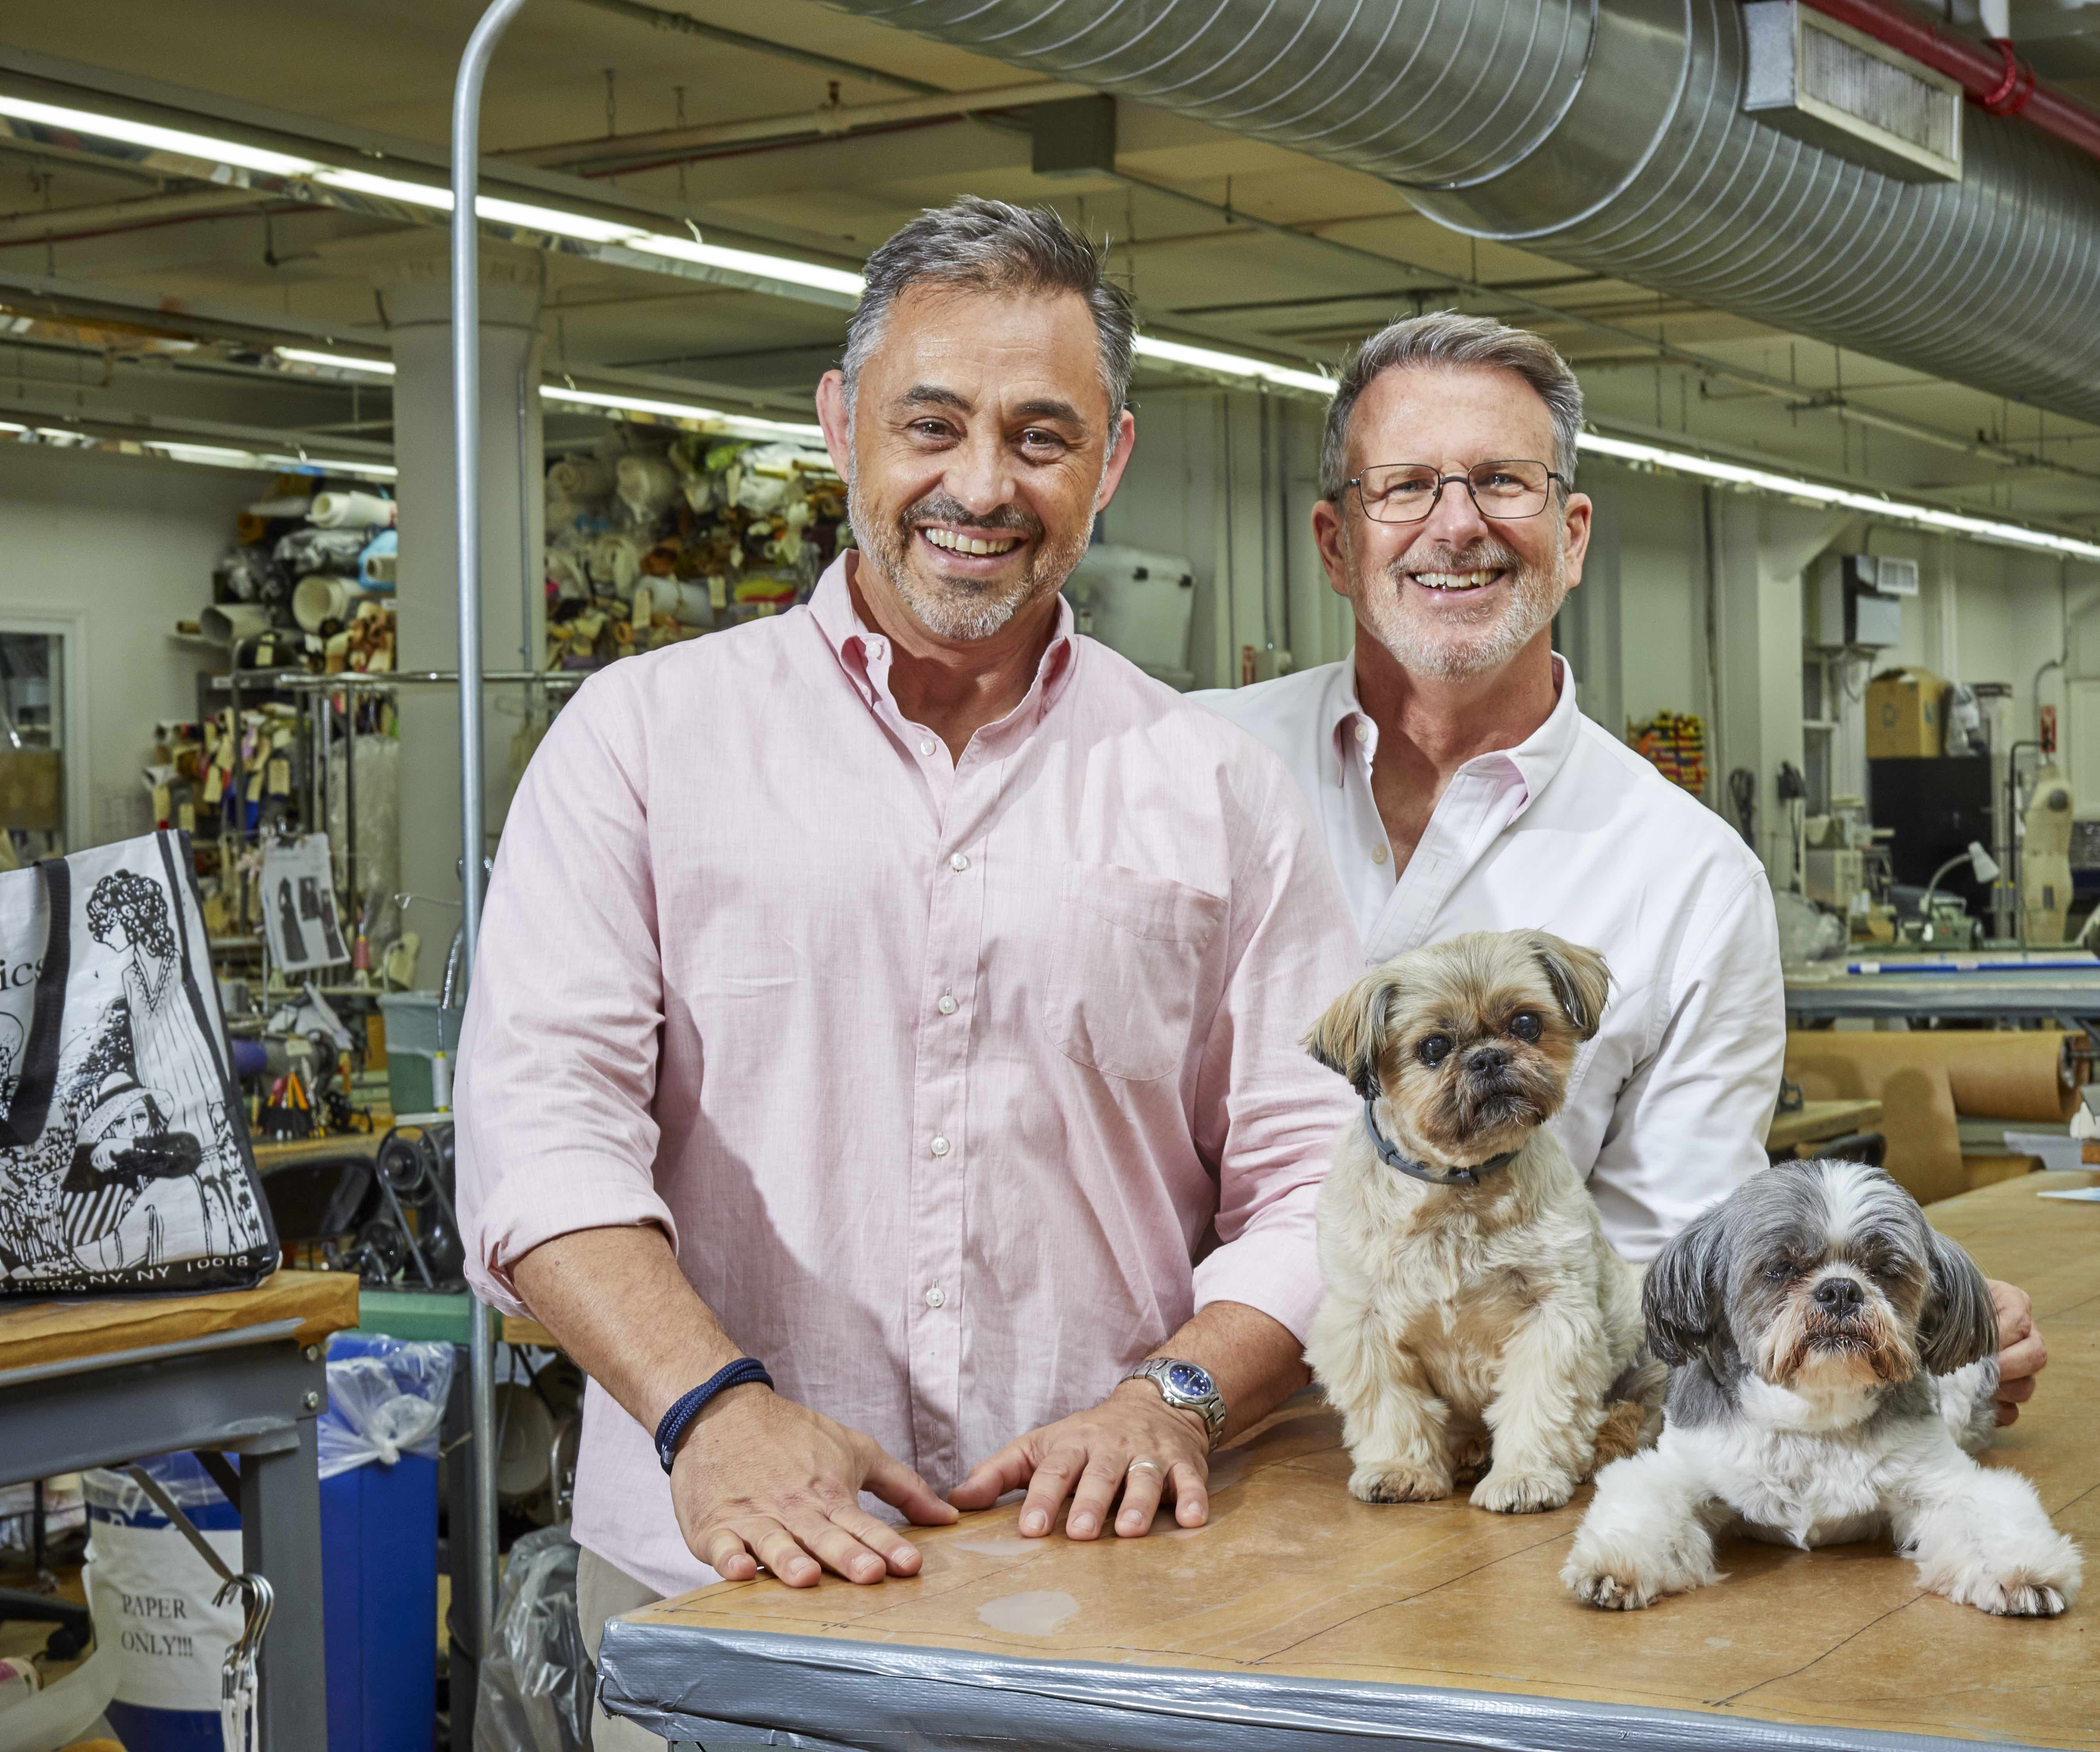 Michael Peck, Eric Winterling, and their two dogs